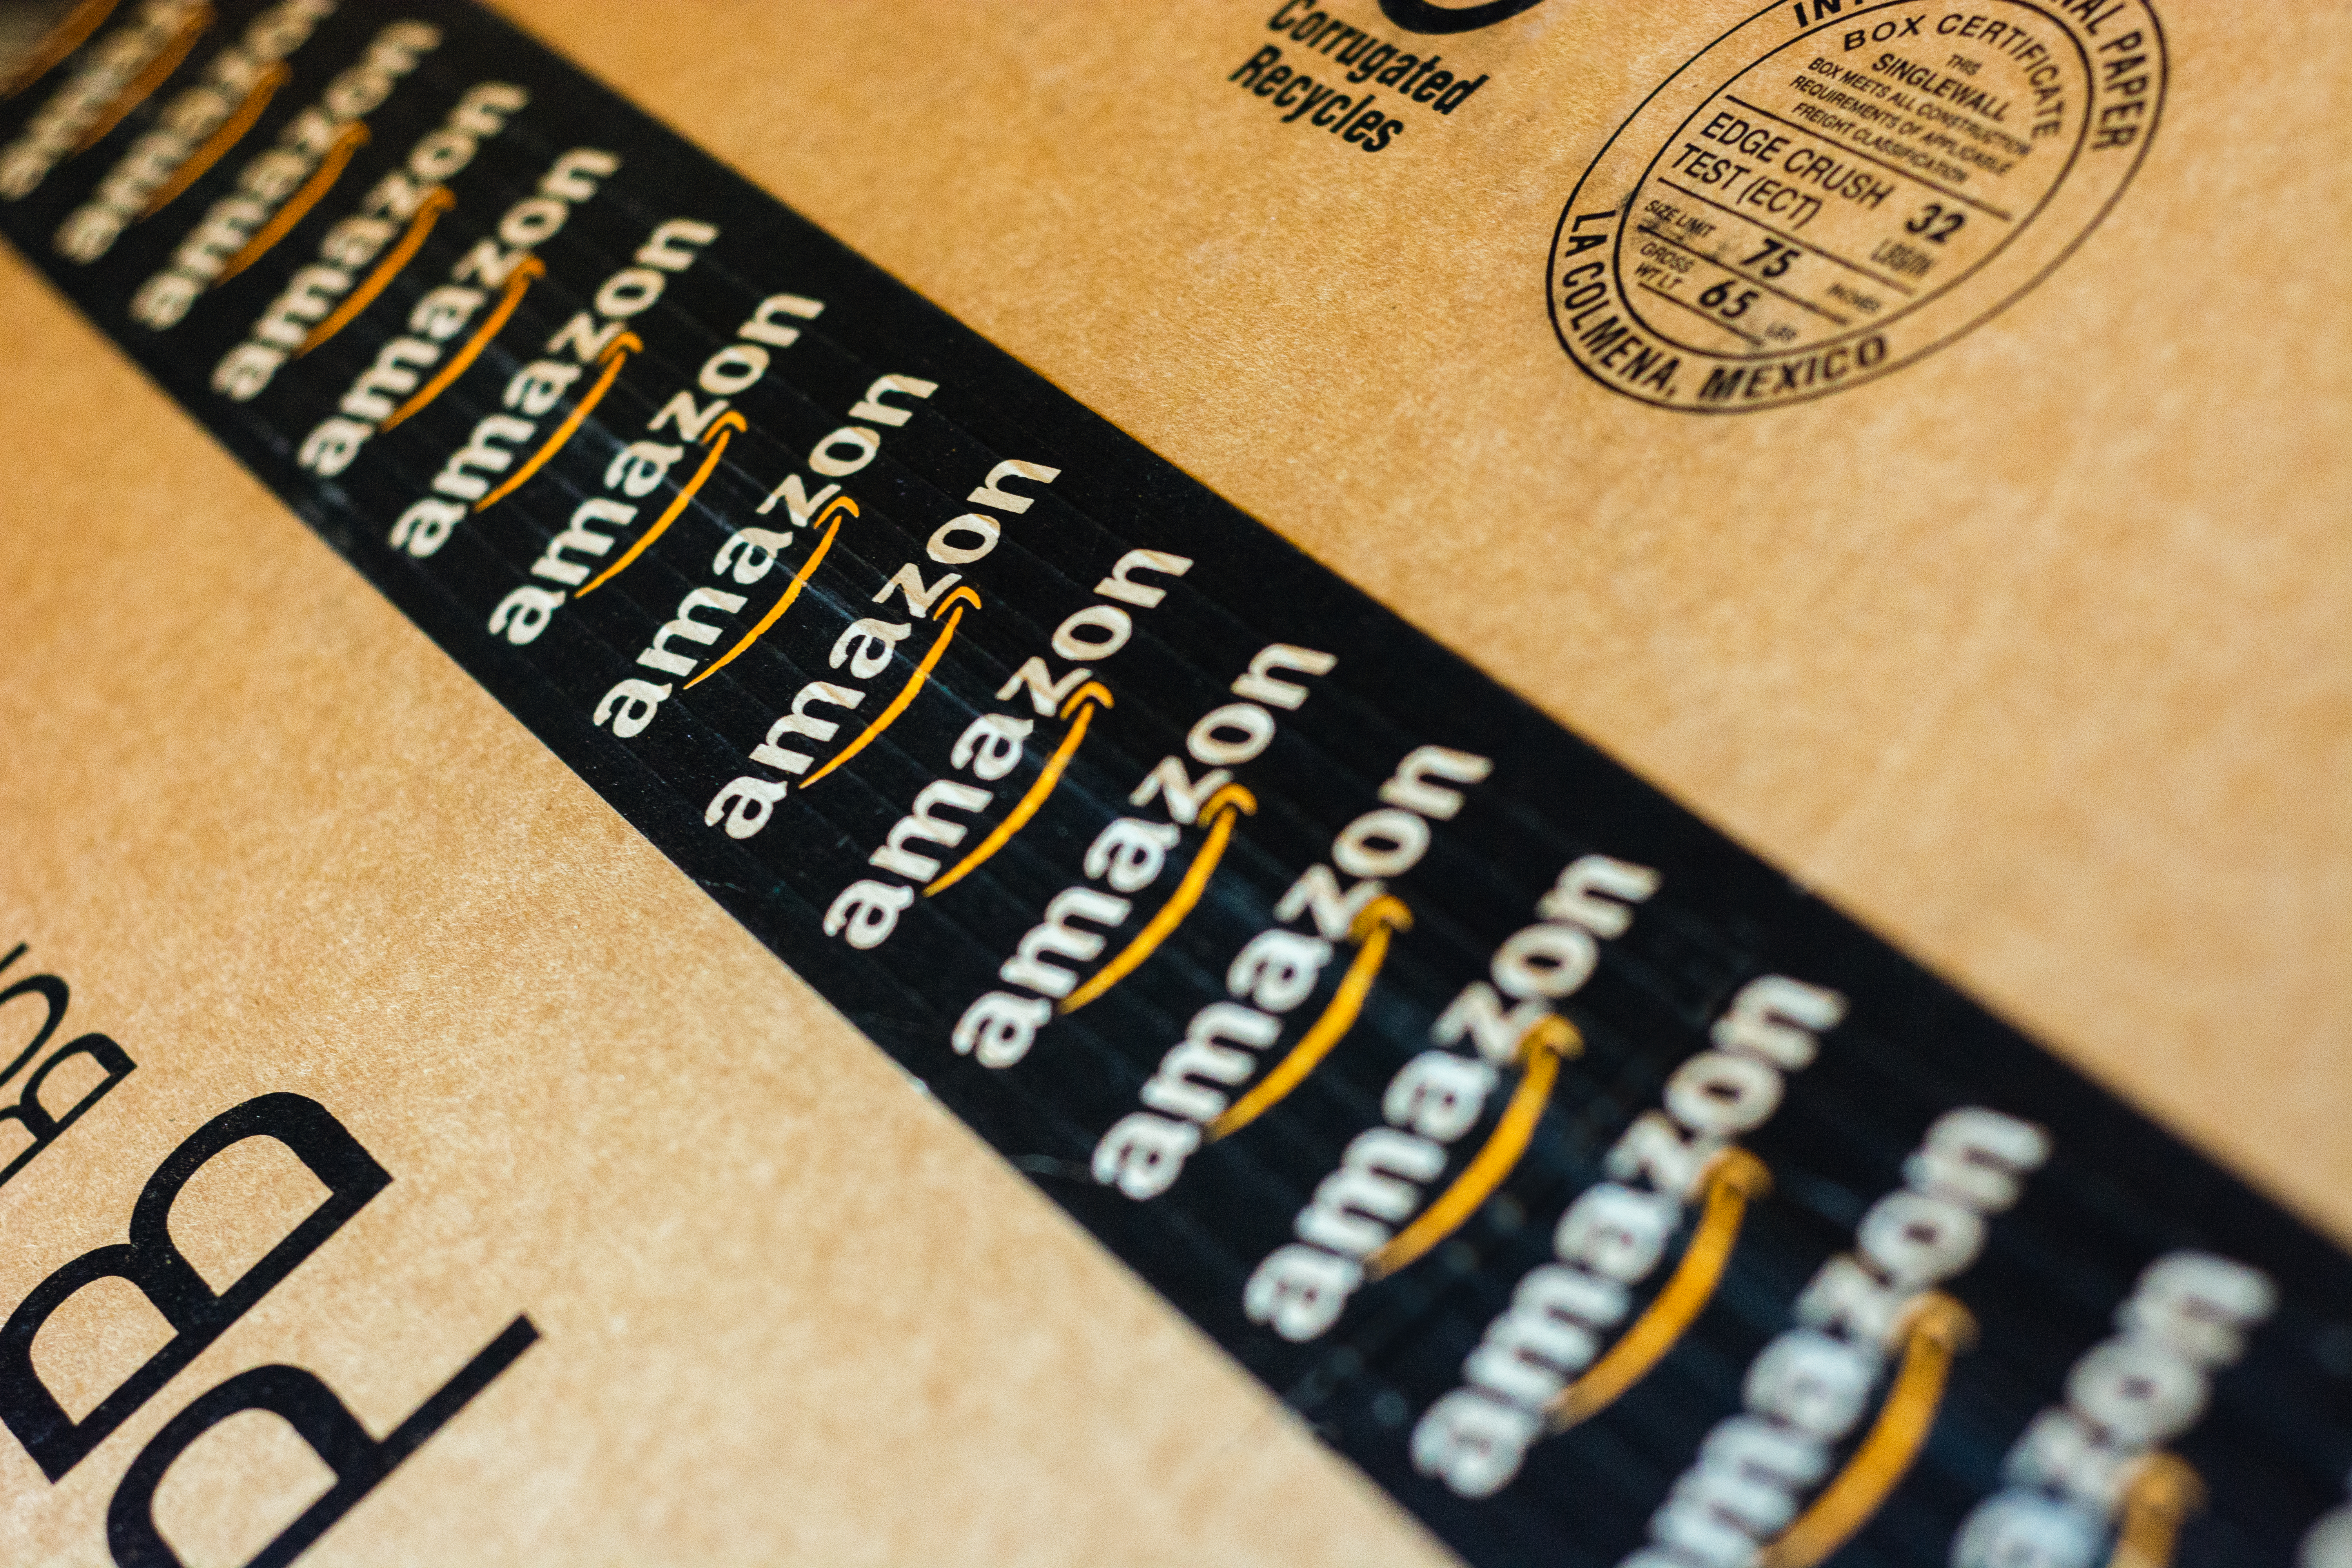 amazon-hiring-open-tech-it-and-engineering-positions-in-barcelona-at-new-logistics-center